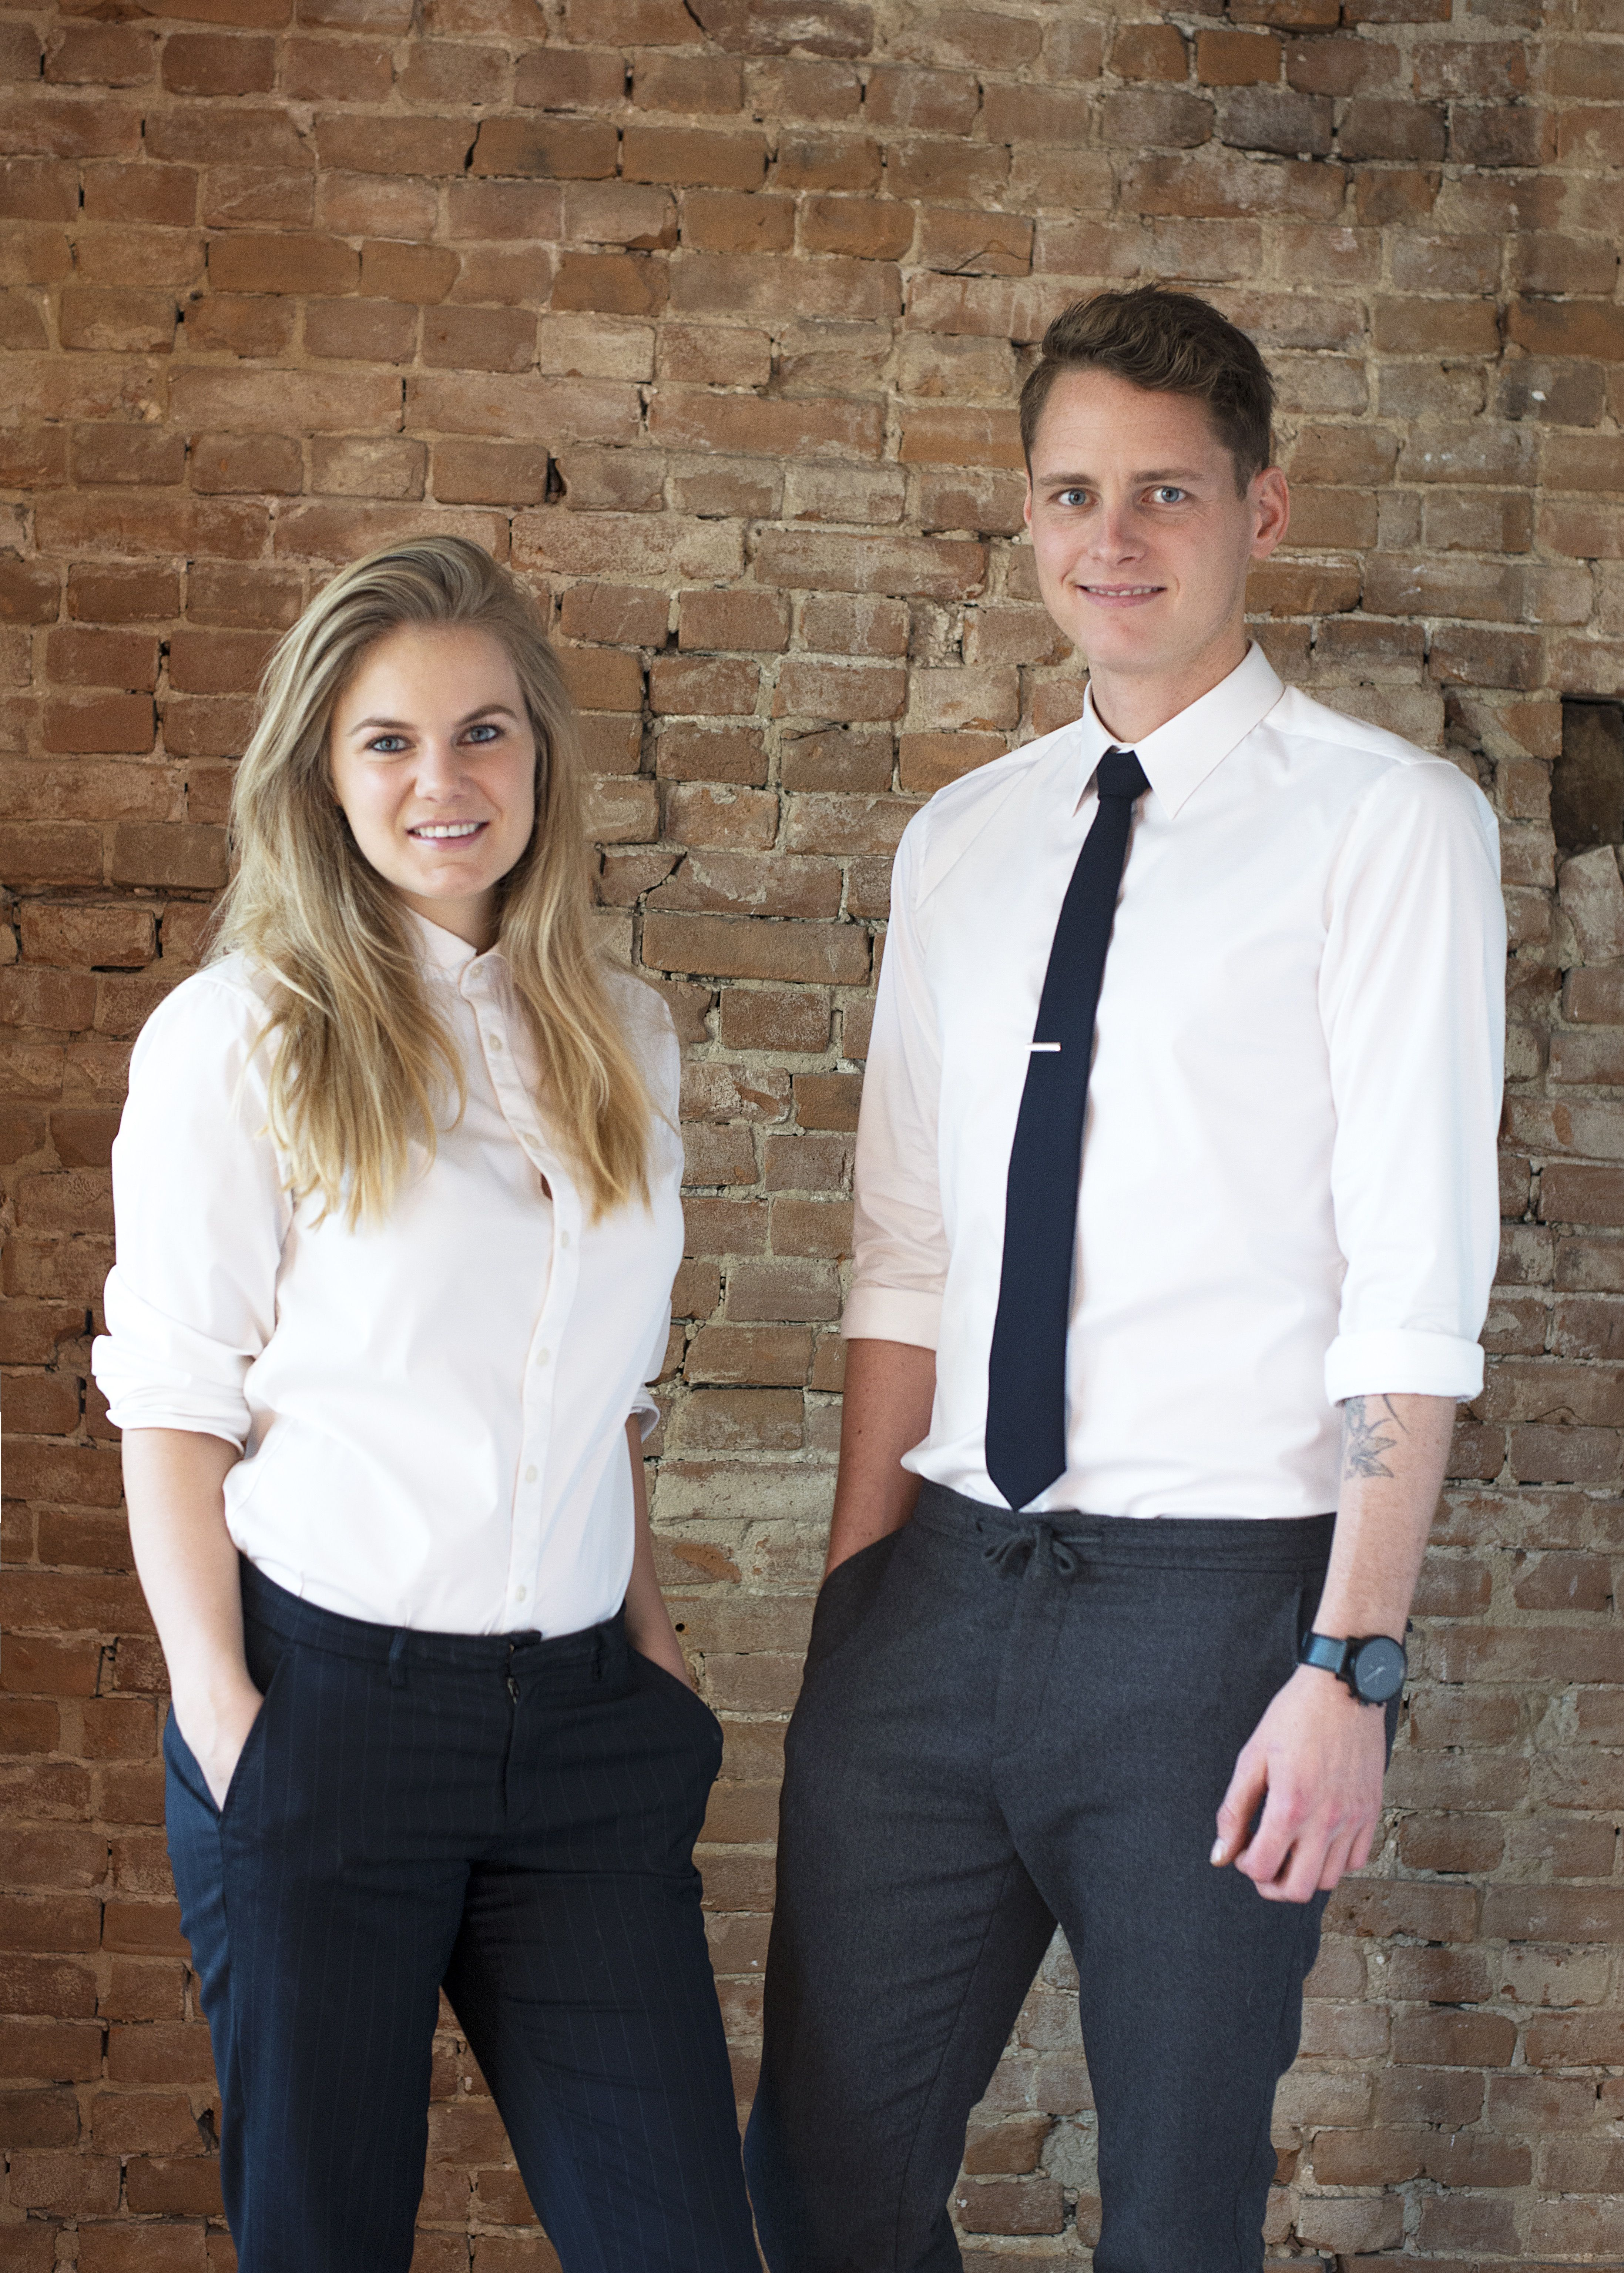 Meet Labfresh founders Lotte and Kasper! The duo founded Labfresh in 2016 with the notion of saving people time, money, and the environment by creating a sustainable and stylish clothing company. The result is a breathable, wrinkle-free, and stain-repellent of line menswear. Visit our website https://labfresh.eu/ to learn more and shop the collection!